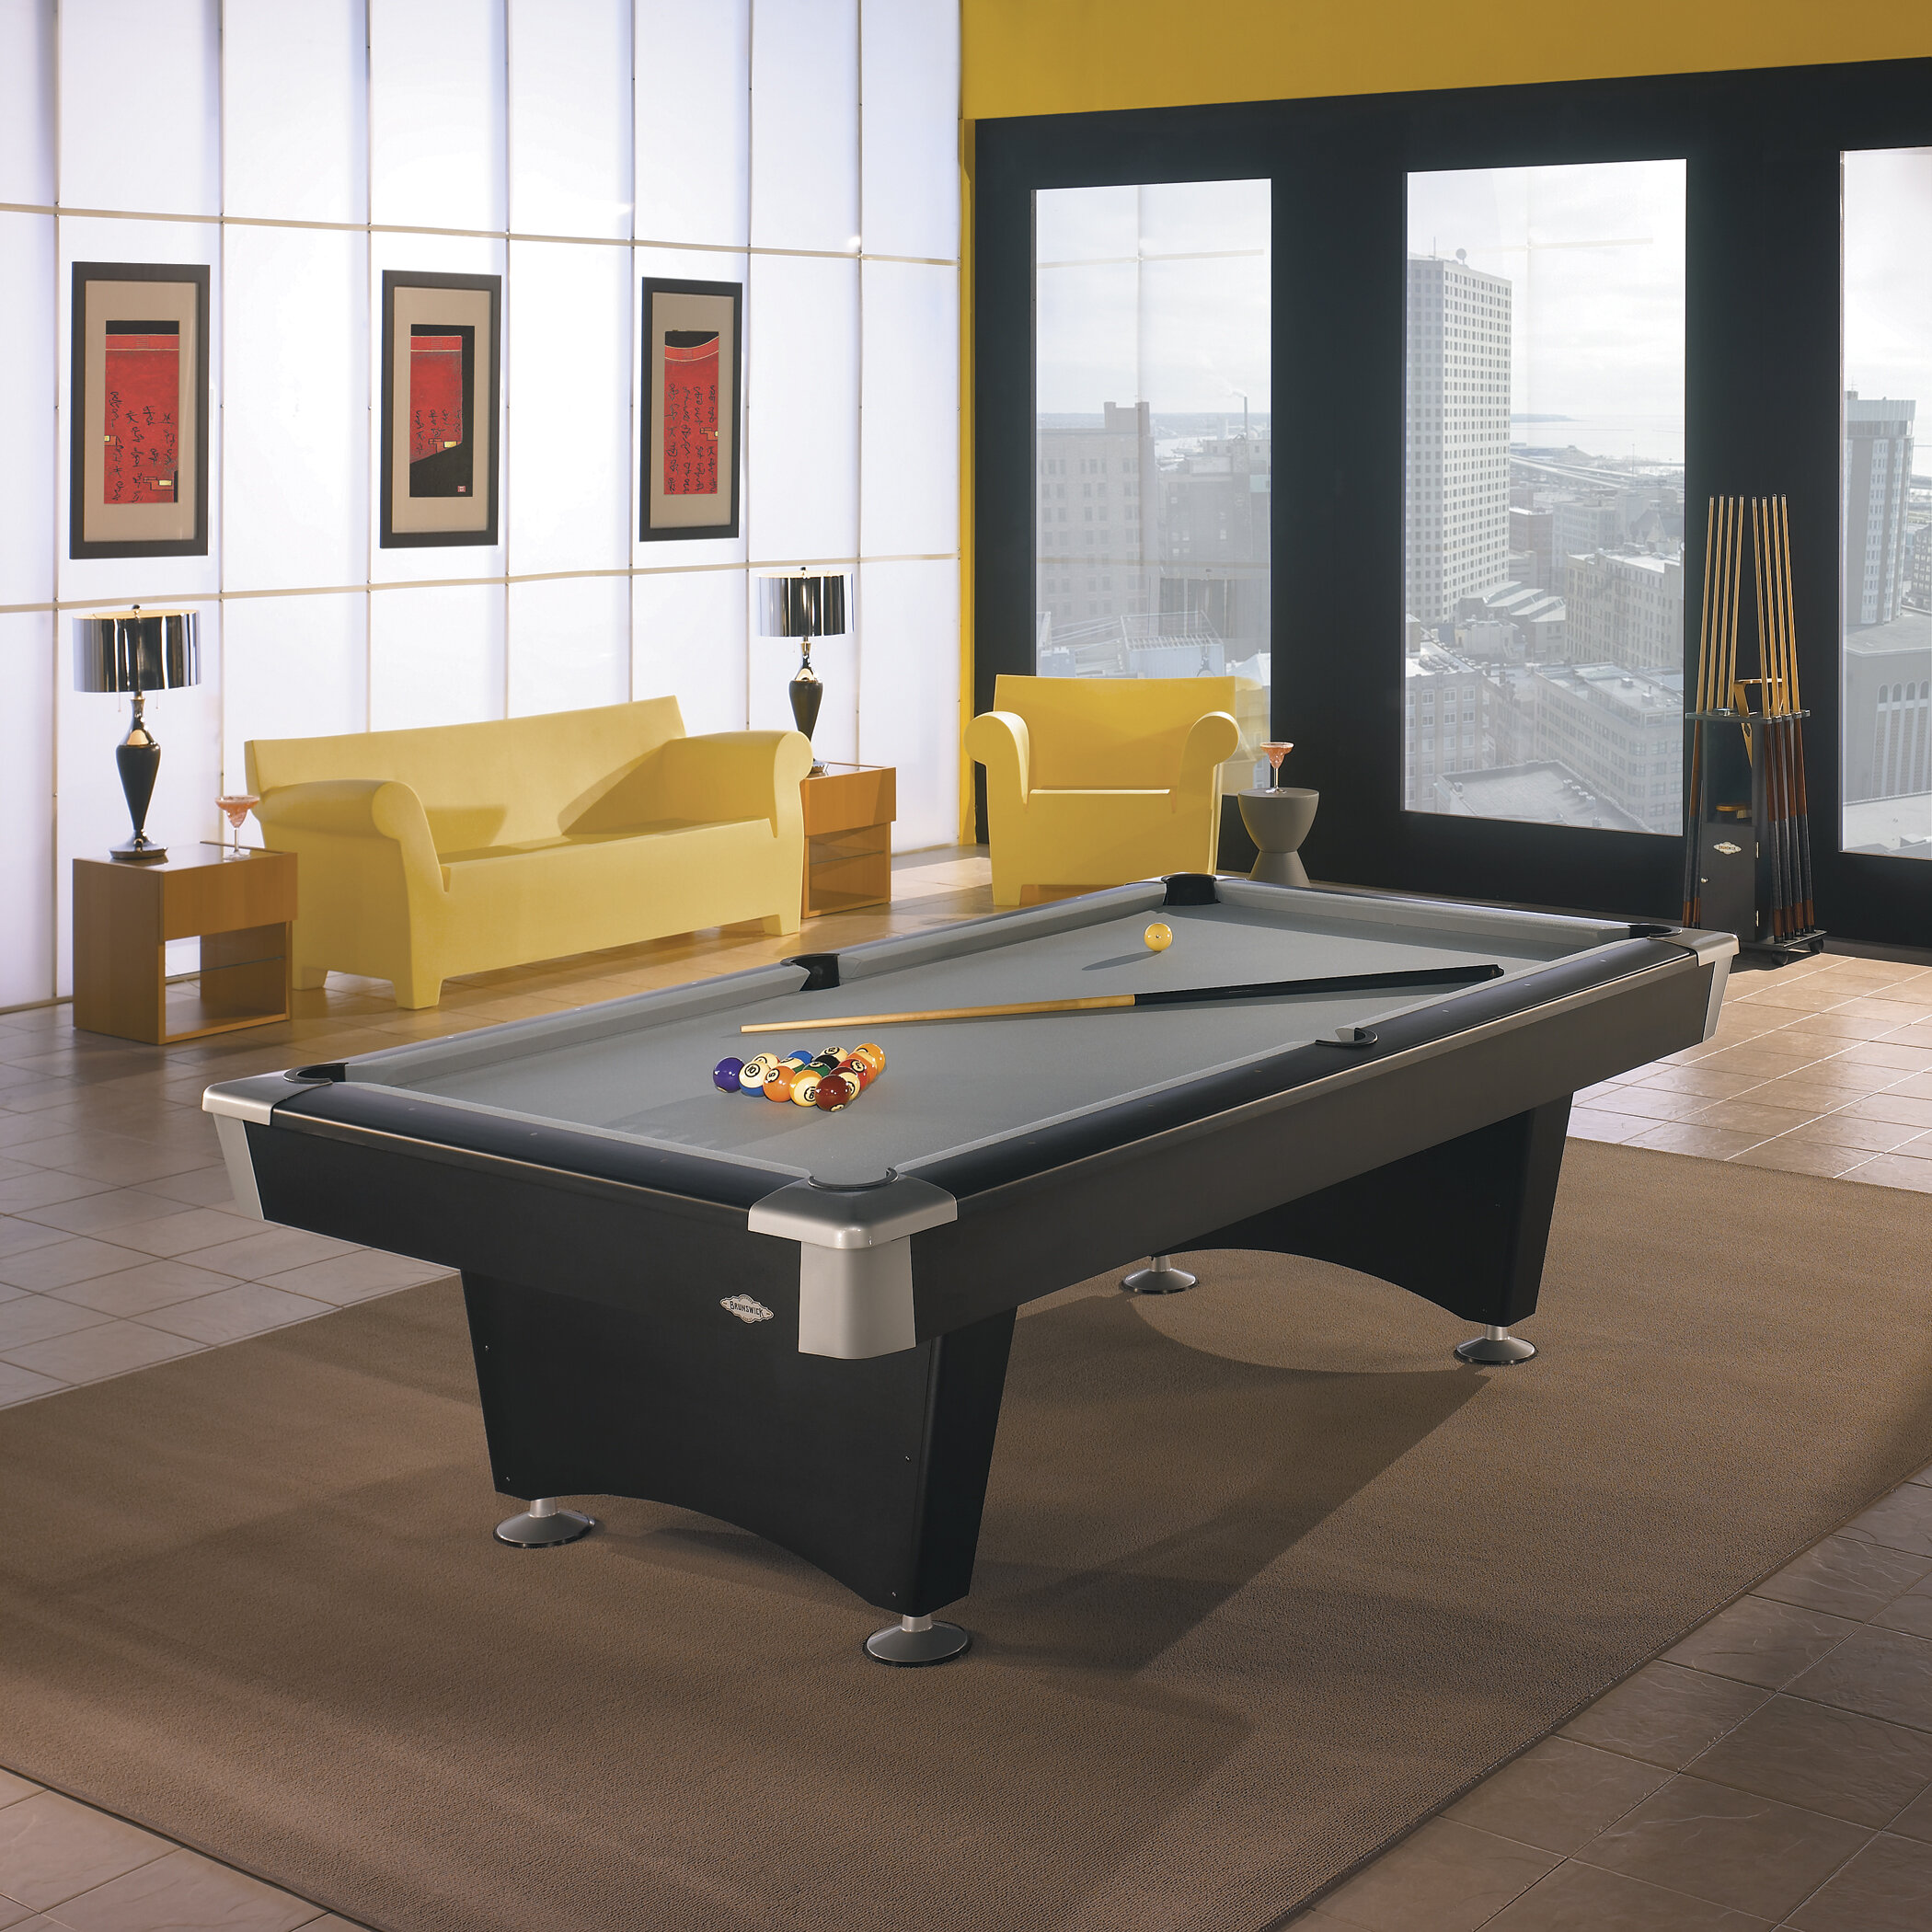 Brunswick Billiards Boca Billiards 8u0027 Pool Table U0026 Reviews | Wayfair